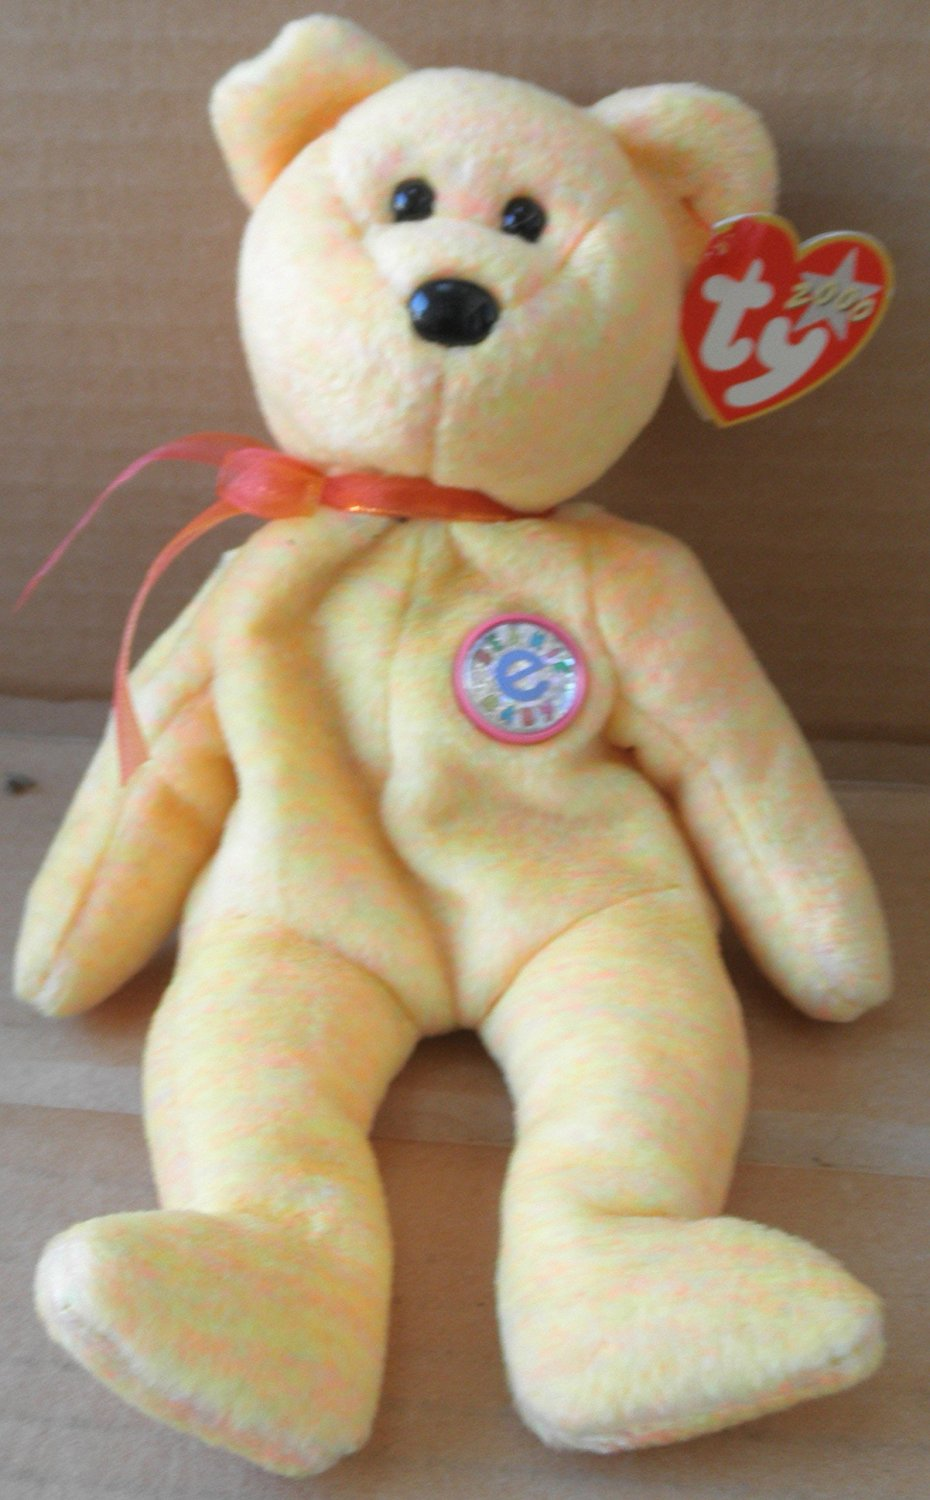 79d719ecef8 Get Quotations · 1 X TY Beanie Babies Sunny the Teddy Bear Plush Toy Stuffed  Animal with Beaded Necklace